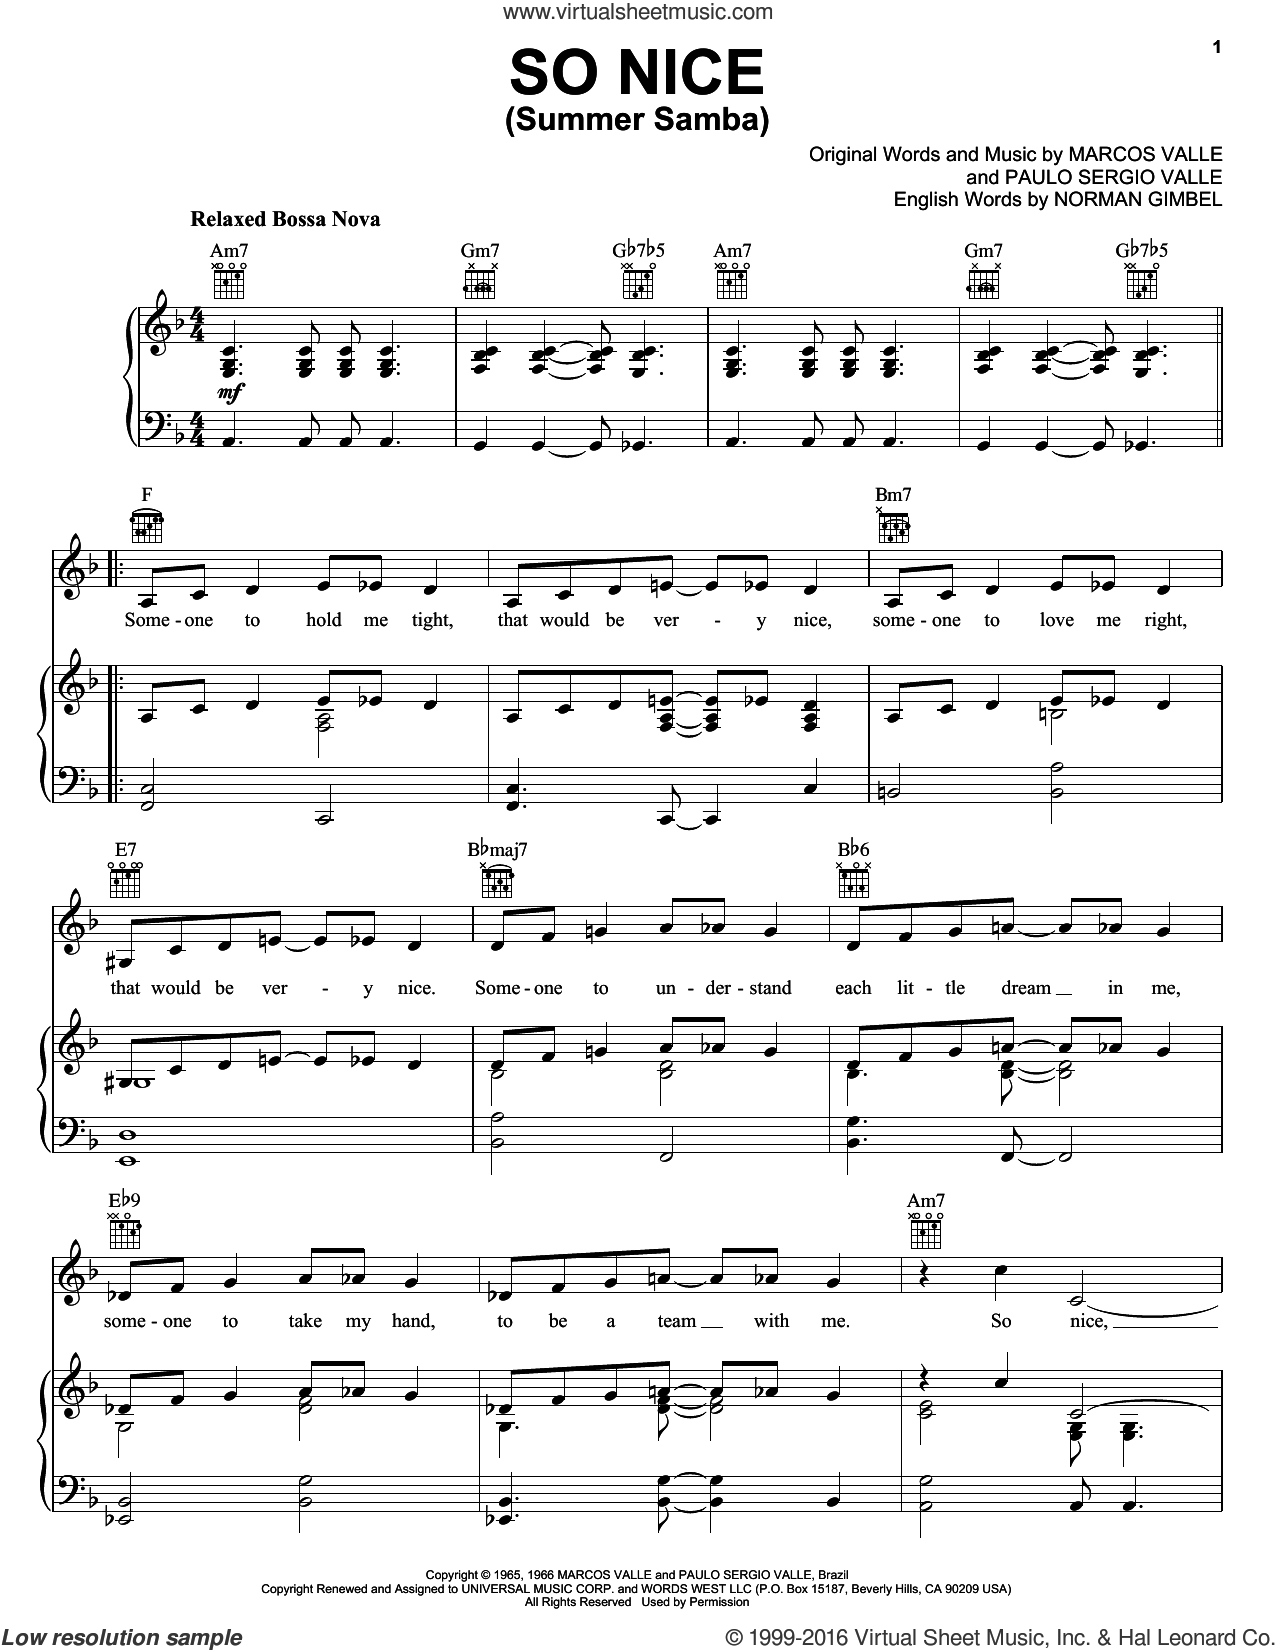 So Nice (Summer Samba) sheet music for voice, piano or guitar by Marcos Valle, Norman Gimbel and Paulo Sergio Valle, intermediate voice, piano or guitar. Score Image Preview.